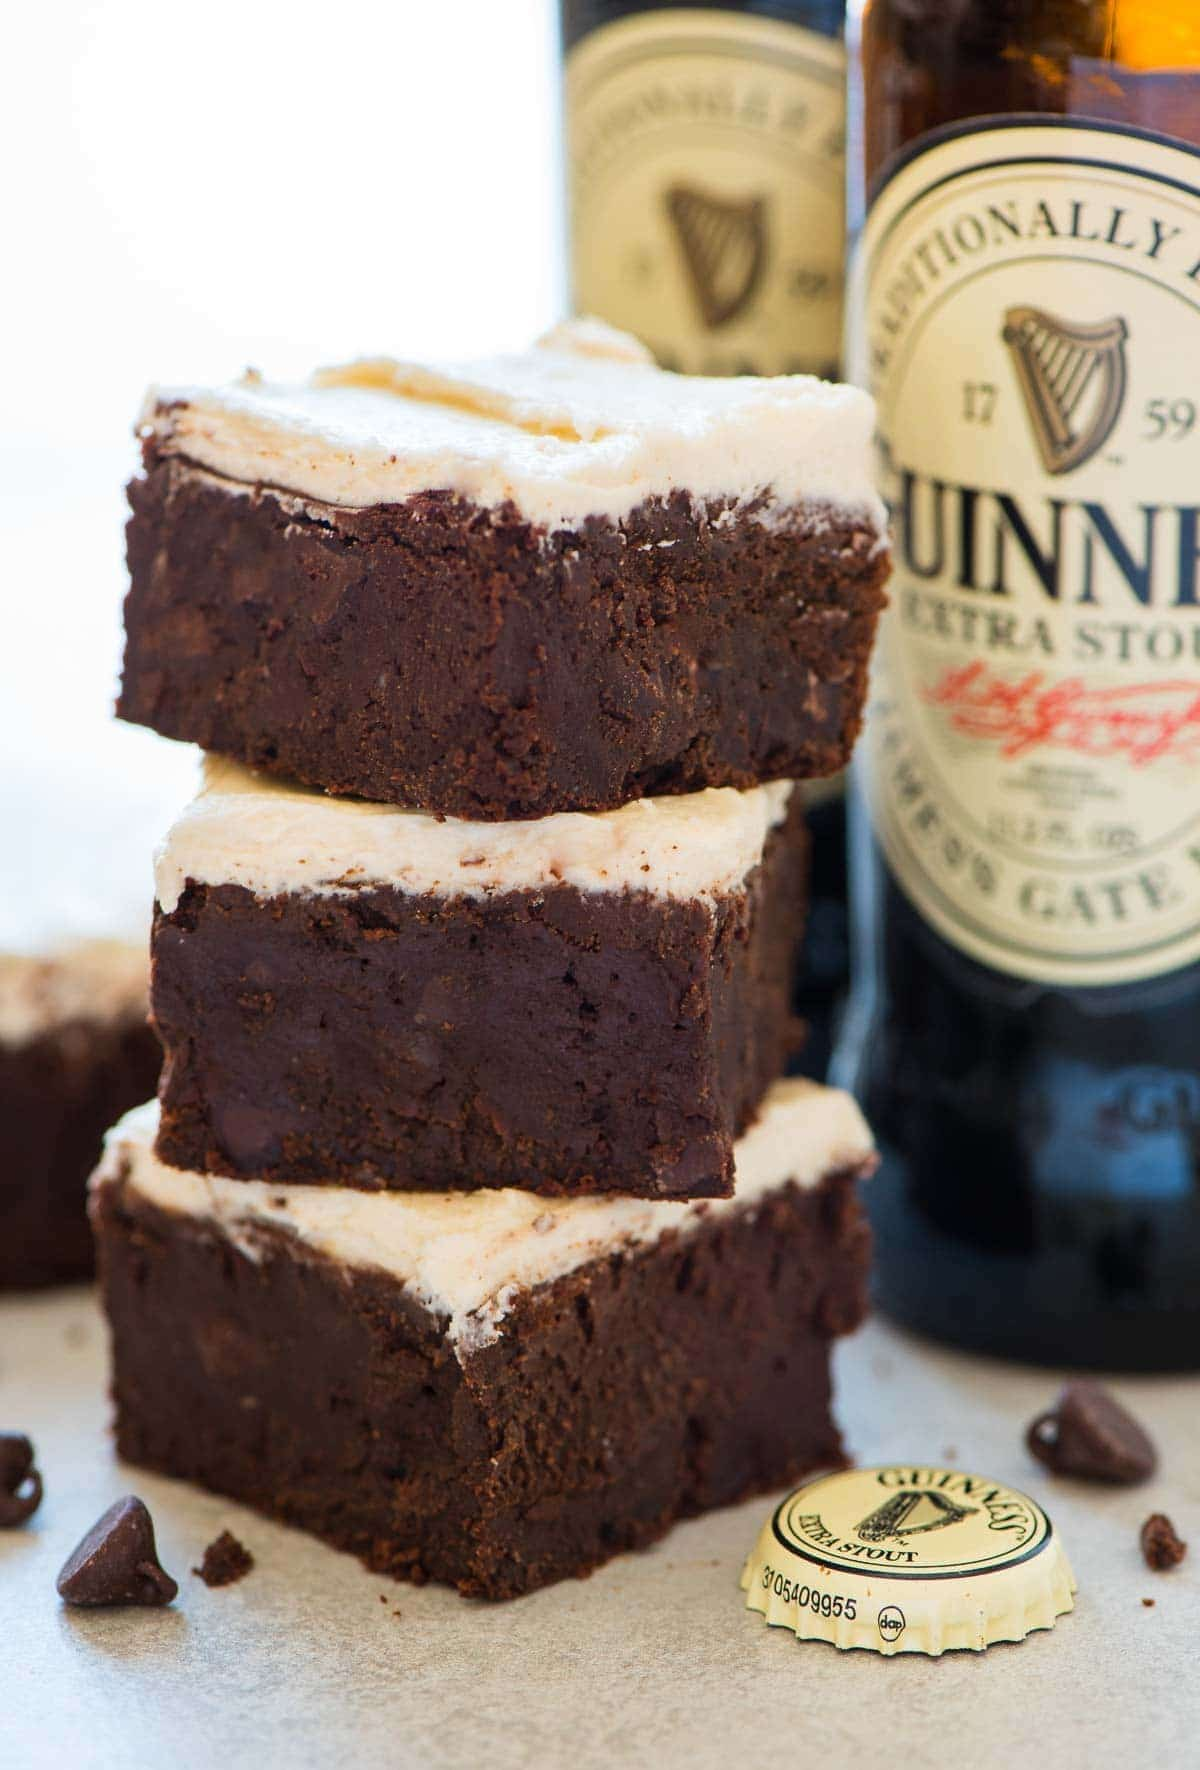 Guinness Brownies - Super moist and chewy brownies with a hint of beer! Decadent, fudgy, and easy to make. You won't be able to stop eating them, and they are the perfect St. Pattys dessert! Recipe at wellplated.com   @wellplated